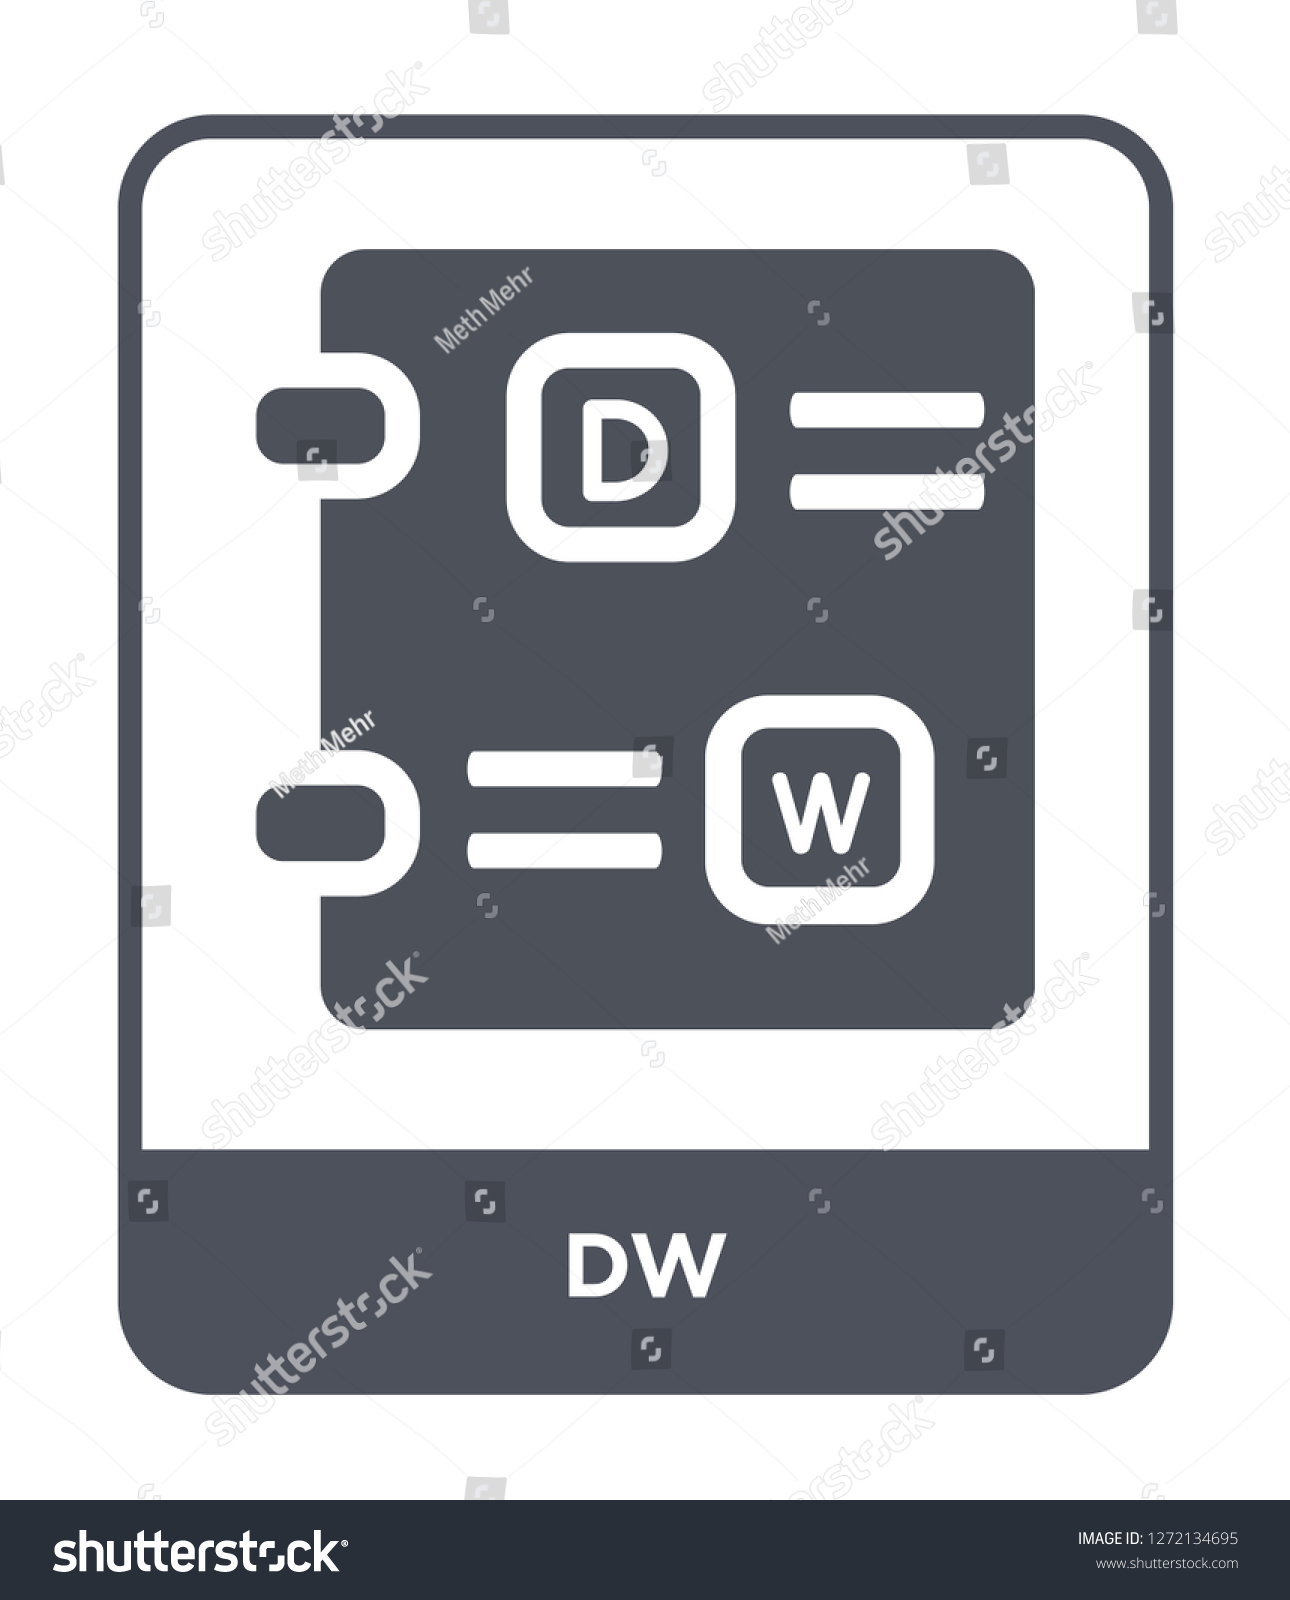 Dw Icon Vector On White Background Stock Vector Royalty 1290x1600